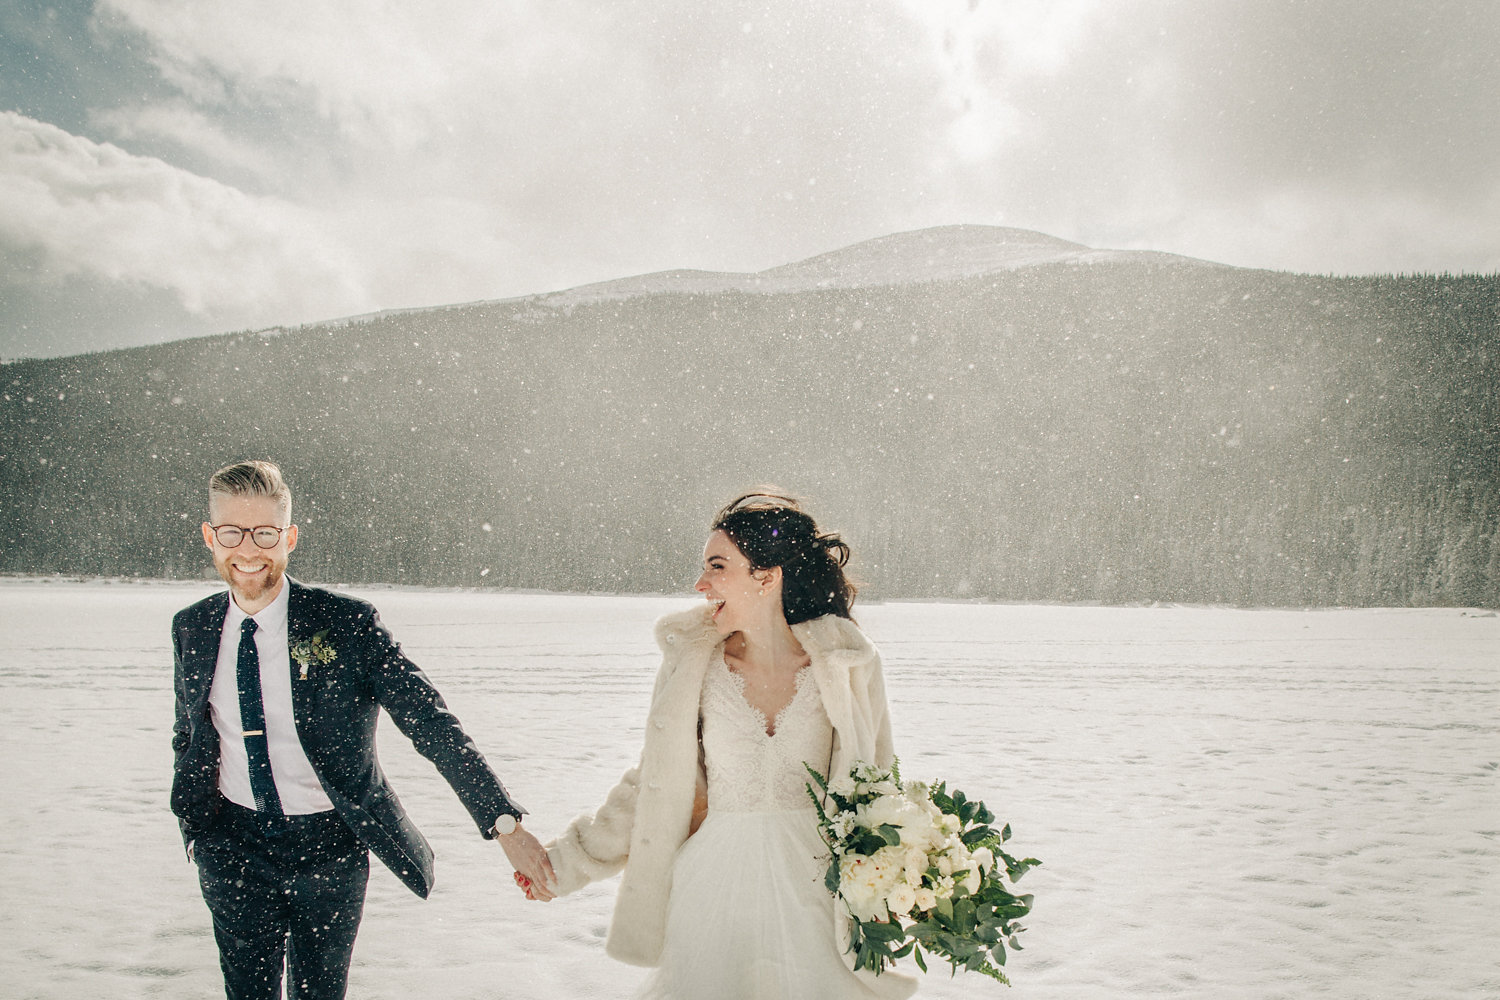 1.9.16 - we got married on the most magical day in denver, co, it felt like the best dream. we dragged all of our best friends onto a frozen lake in dress clothes at 8am ... anything for a good picture & memory!